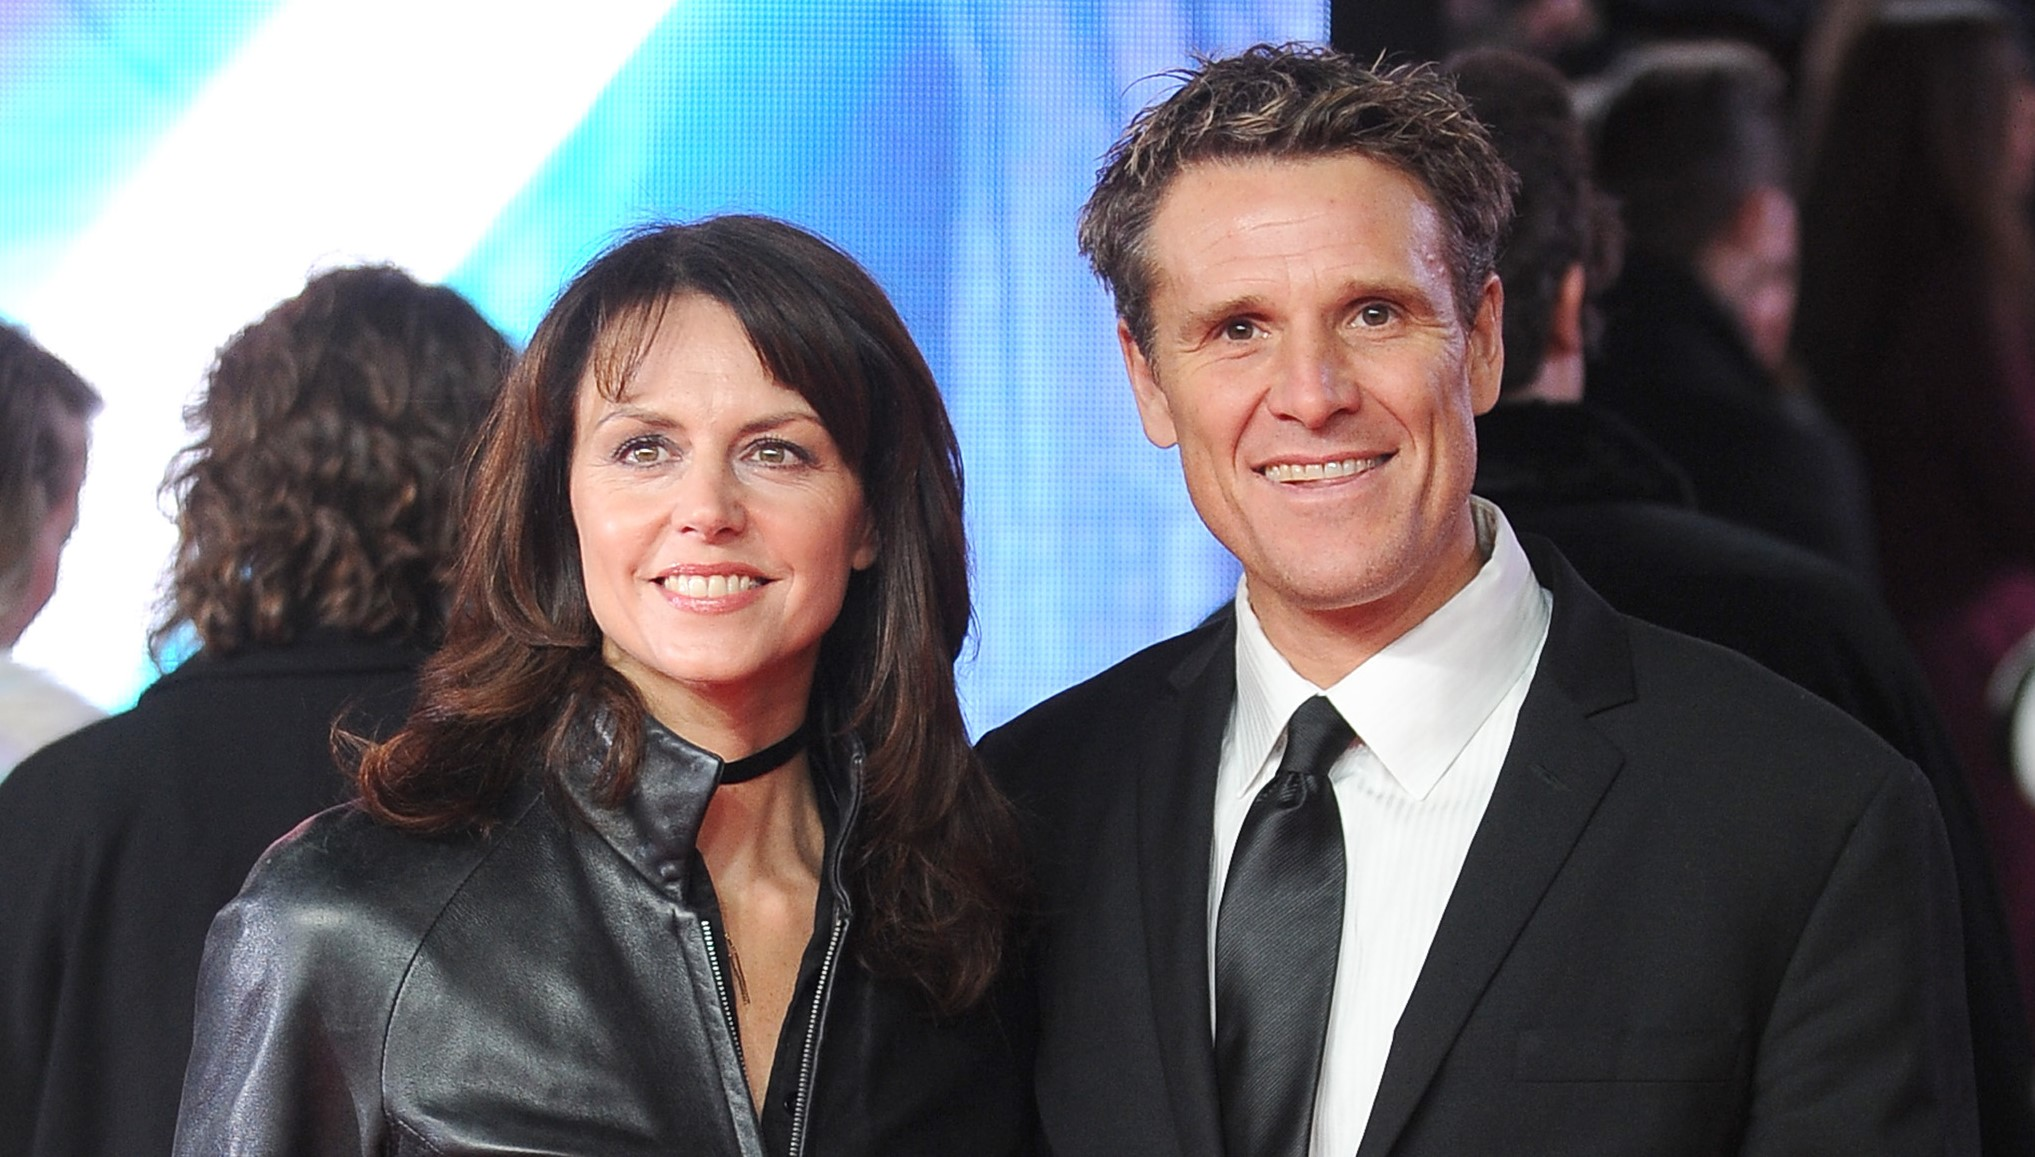 Strictly Come Dancing: James Cracknell reveals real reason for his divorce